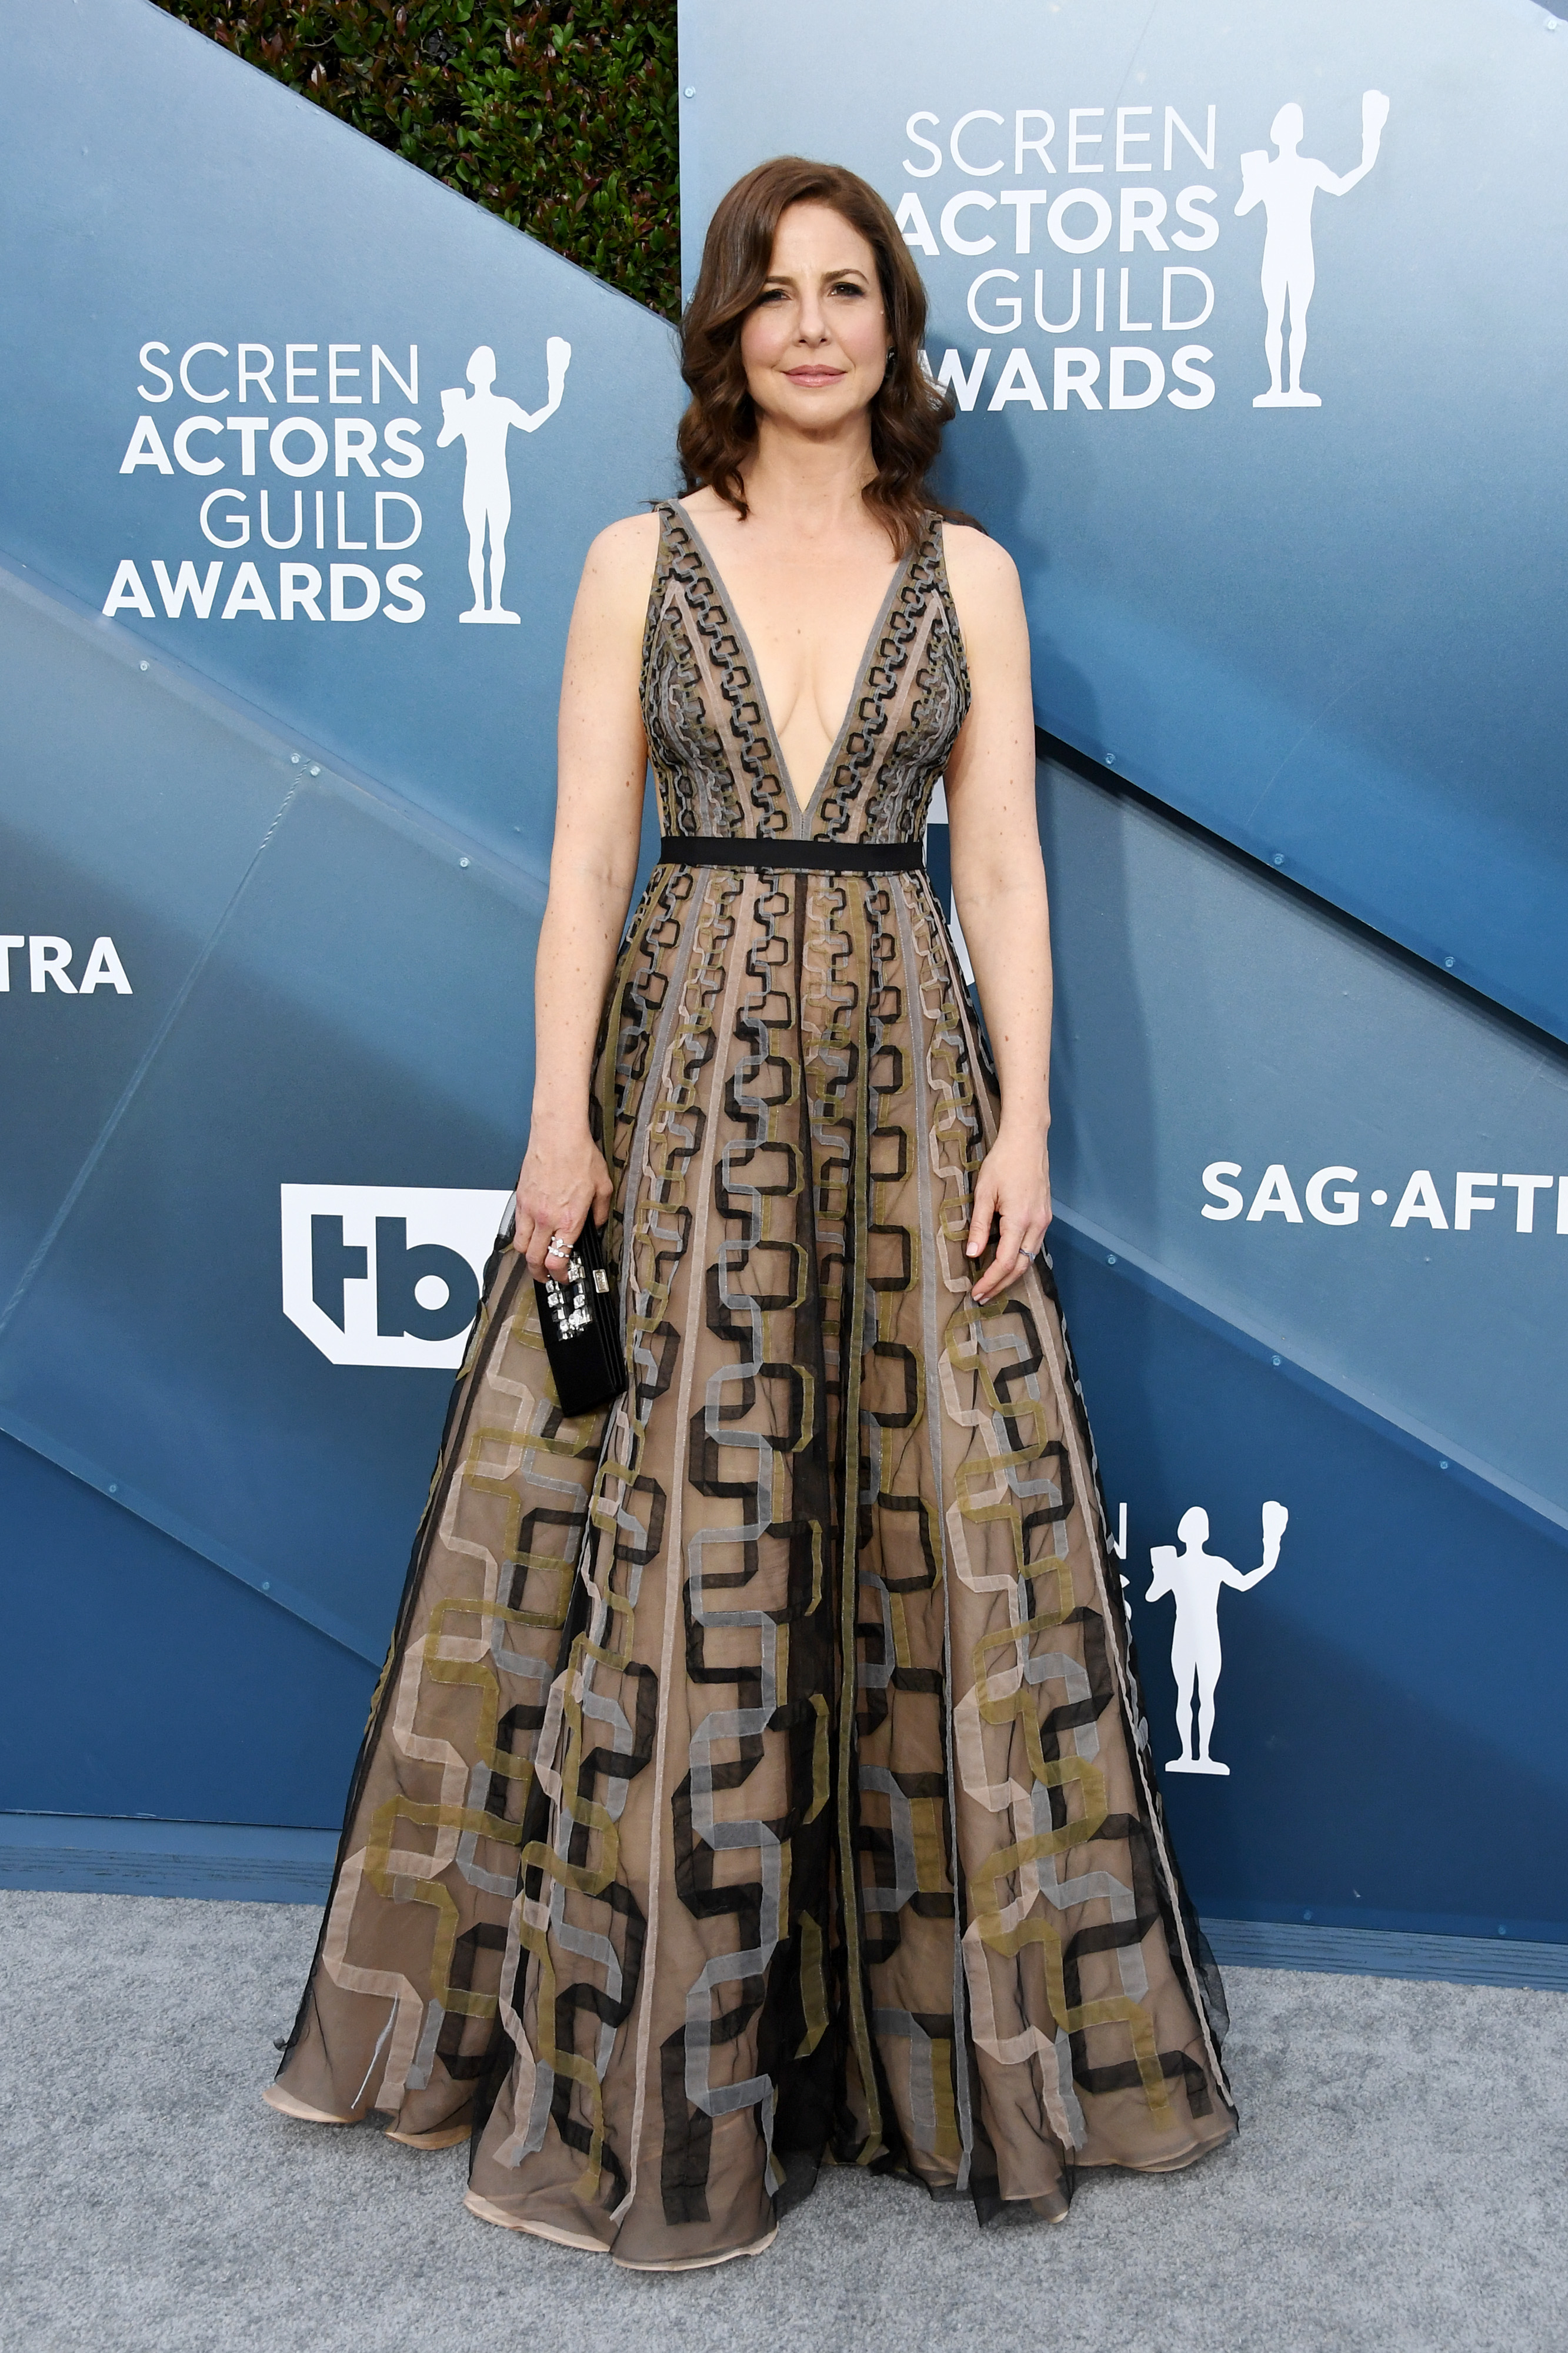 LOS ANGELES, CALIFORNIA - JANUARY 19: Robin Weigert attends the 26th Annual Screen ActorsGuild Awards at The Shrine Auditorium on January 19, 2020 in Los Angeles, California. (Photo by Jon Kopaloff/Getty Images)